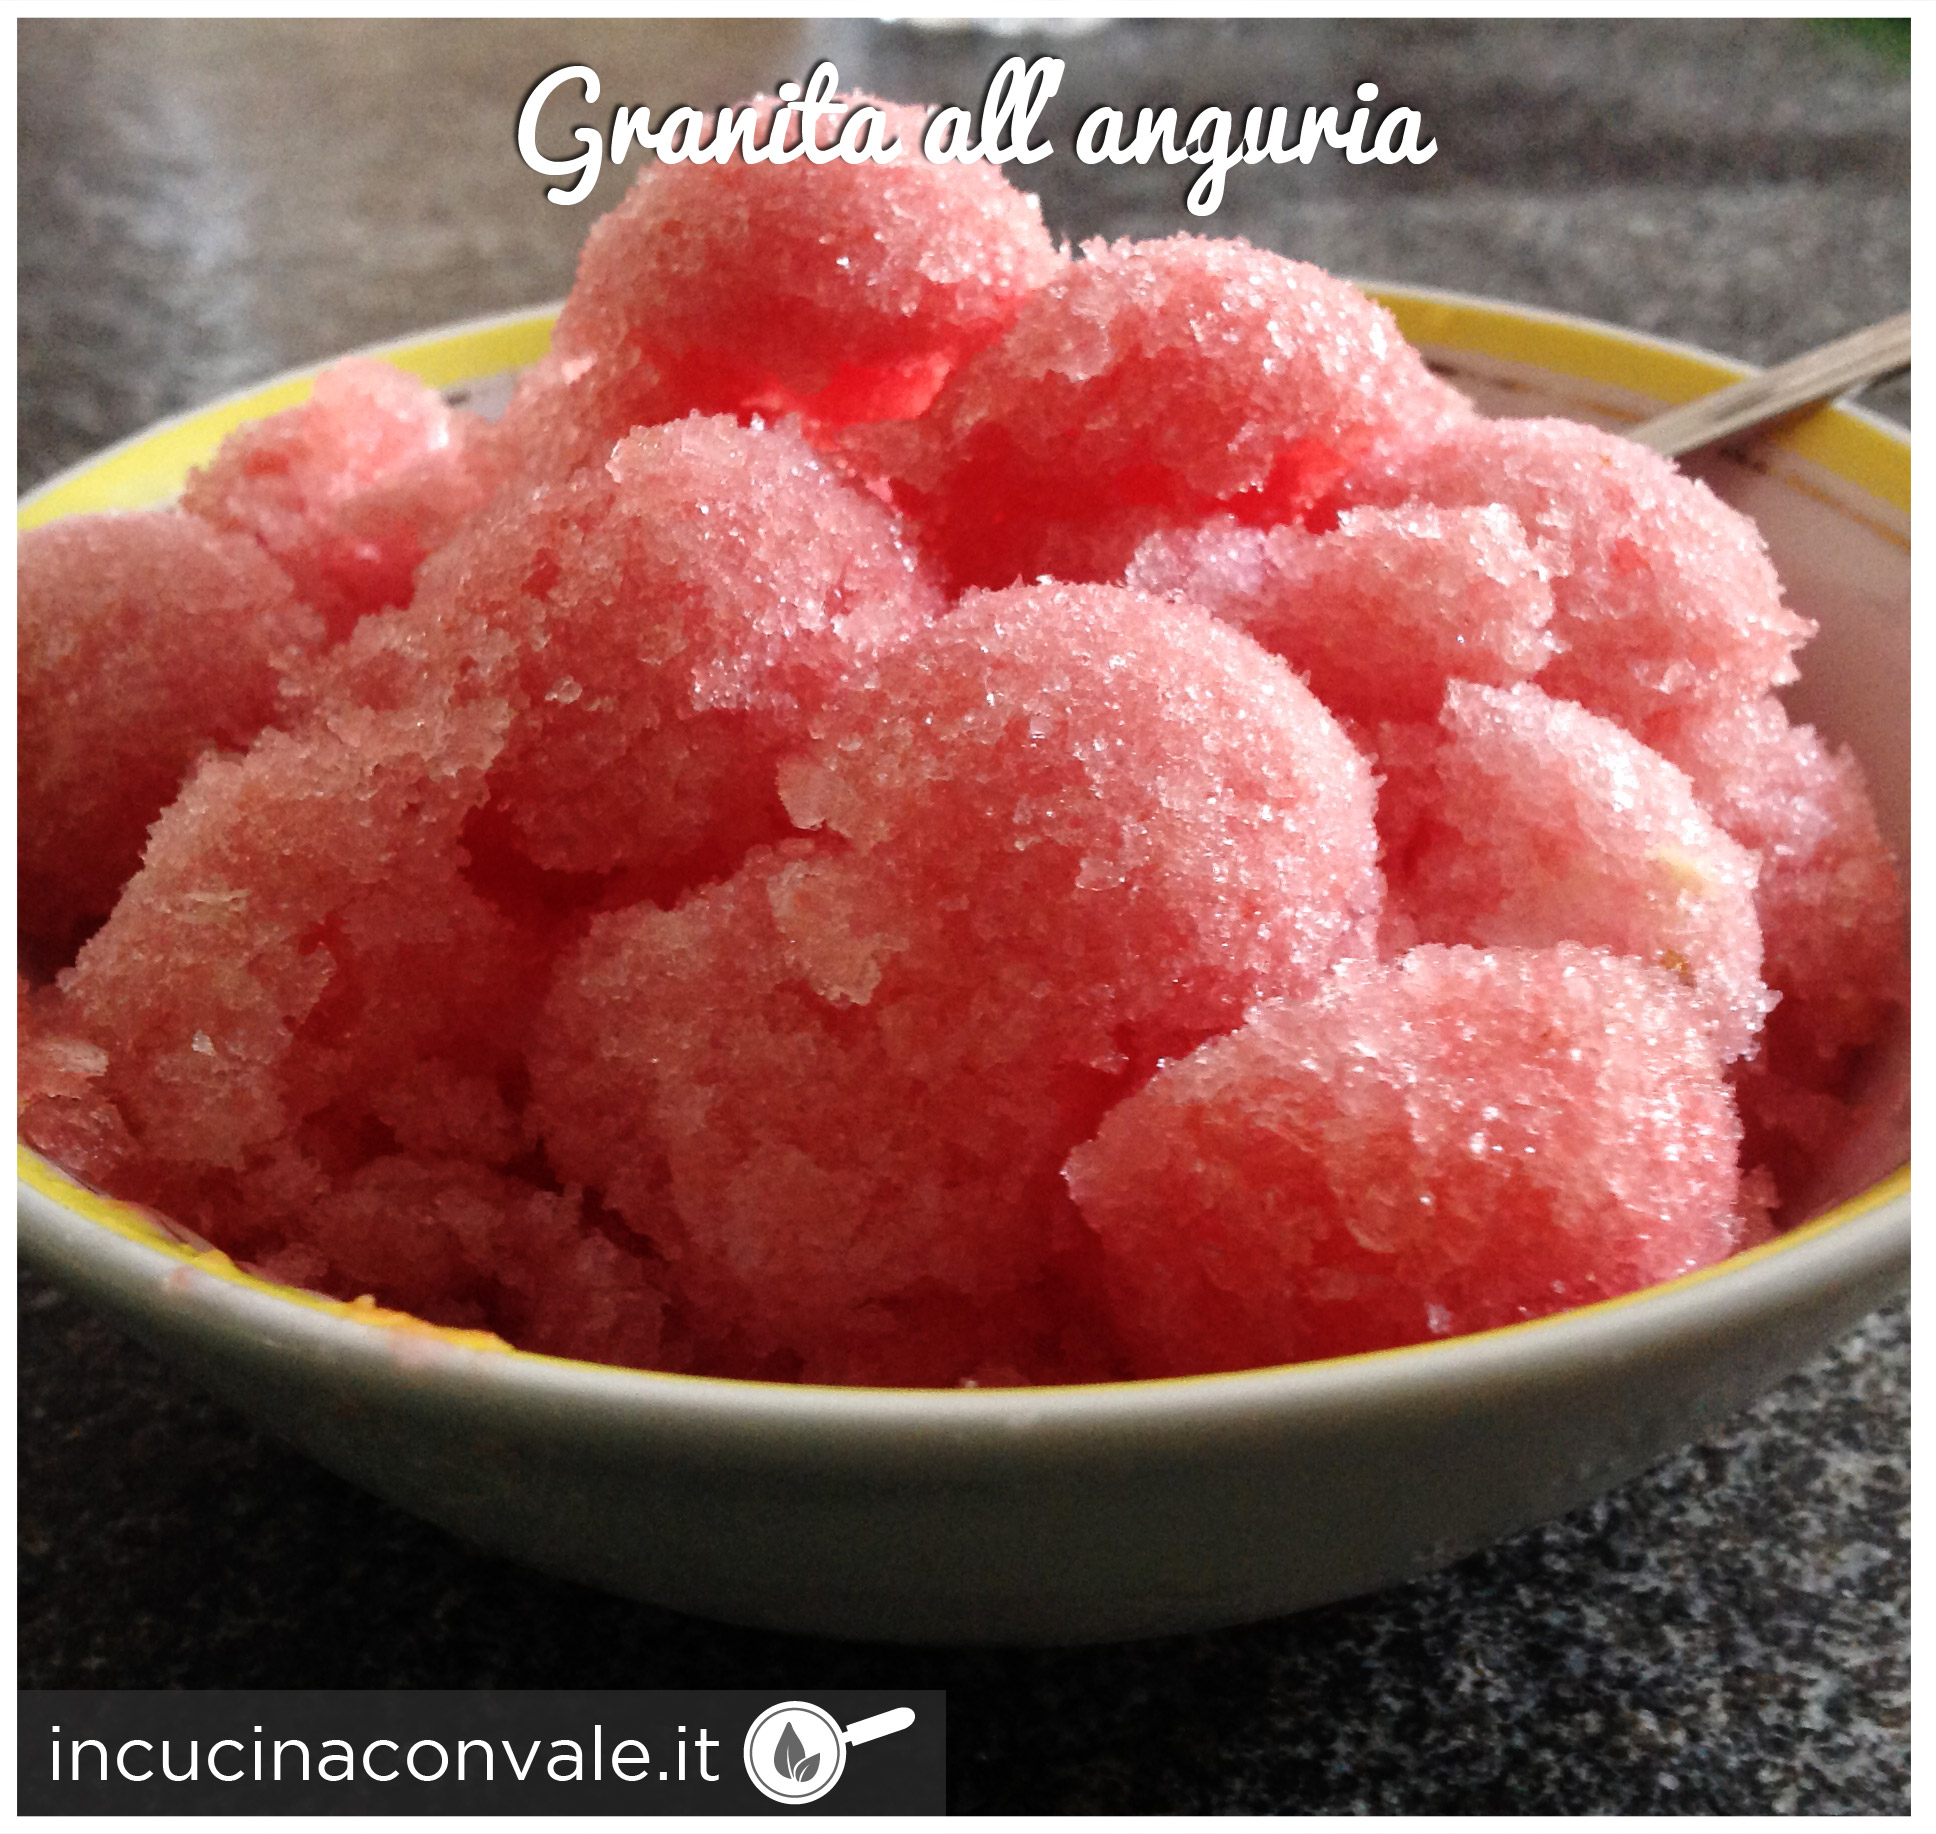 Granita all'anguria senza coloranti ne conservanti